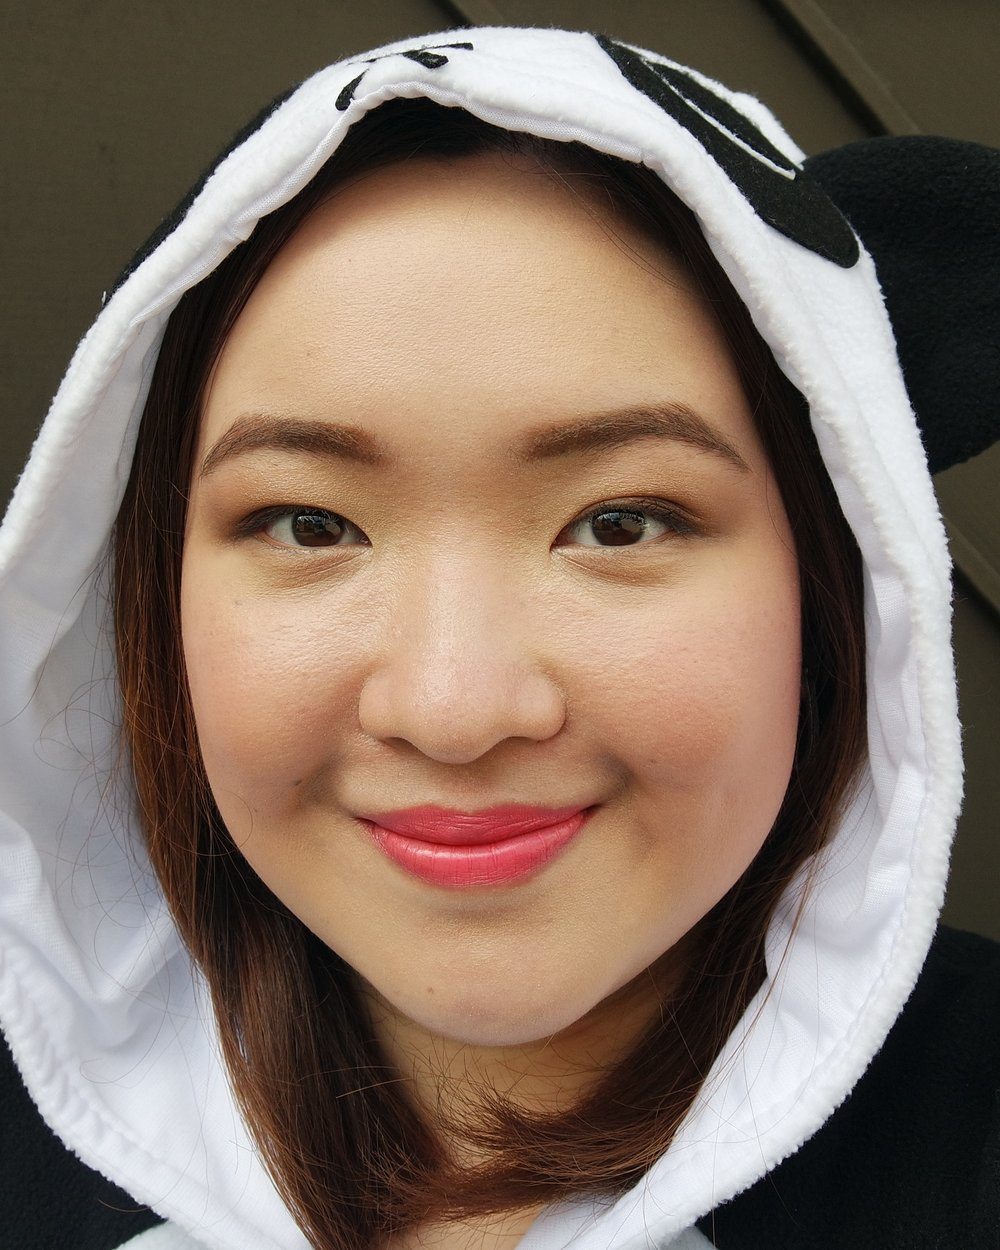 Products Used: Panda's Dream Clear Pact in 02 Beige, Panda's Dual Lip and Cheek in 02 Pink Baby, Panda's Dream Contour Stick in 01 Highlighter, and Panda's Dream Lip Crayon in 02 Heart Pink